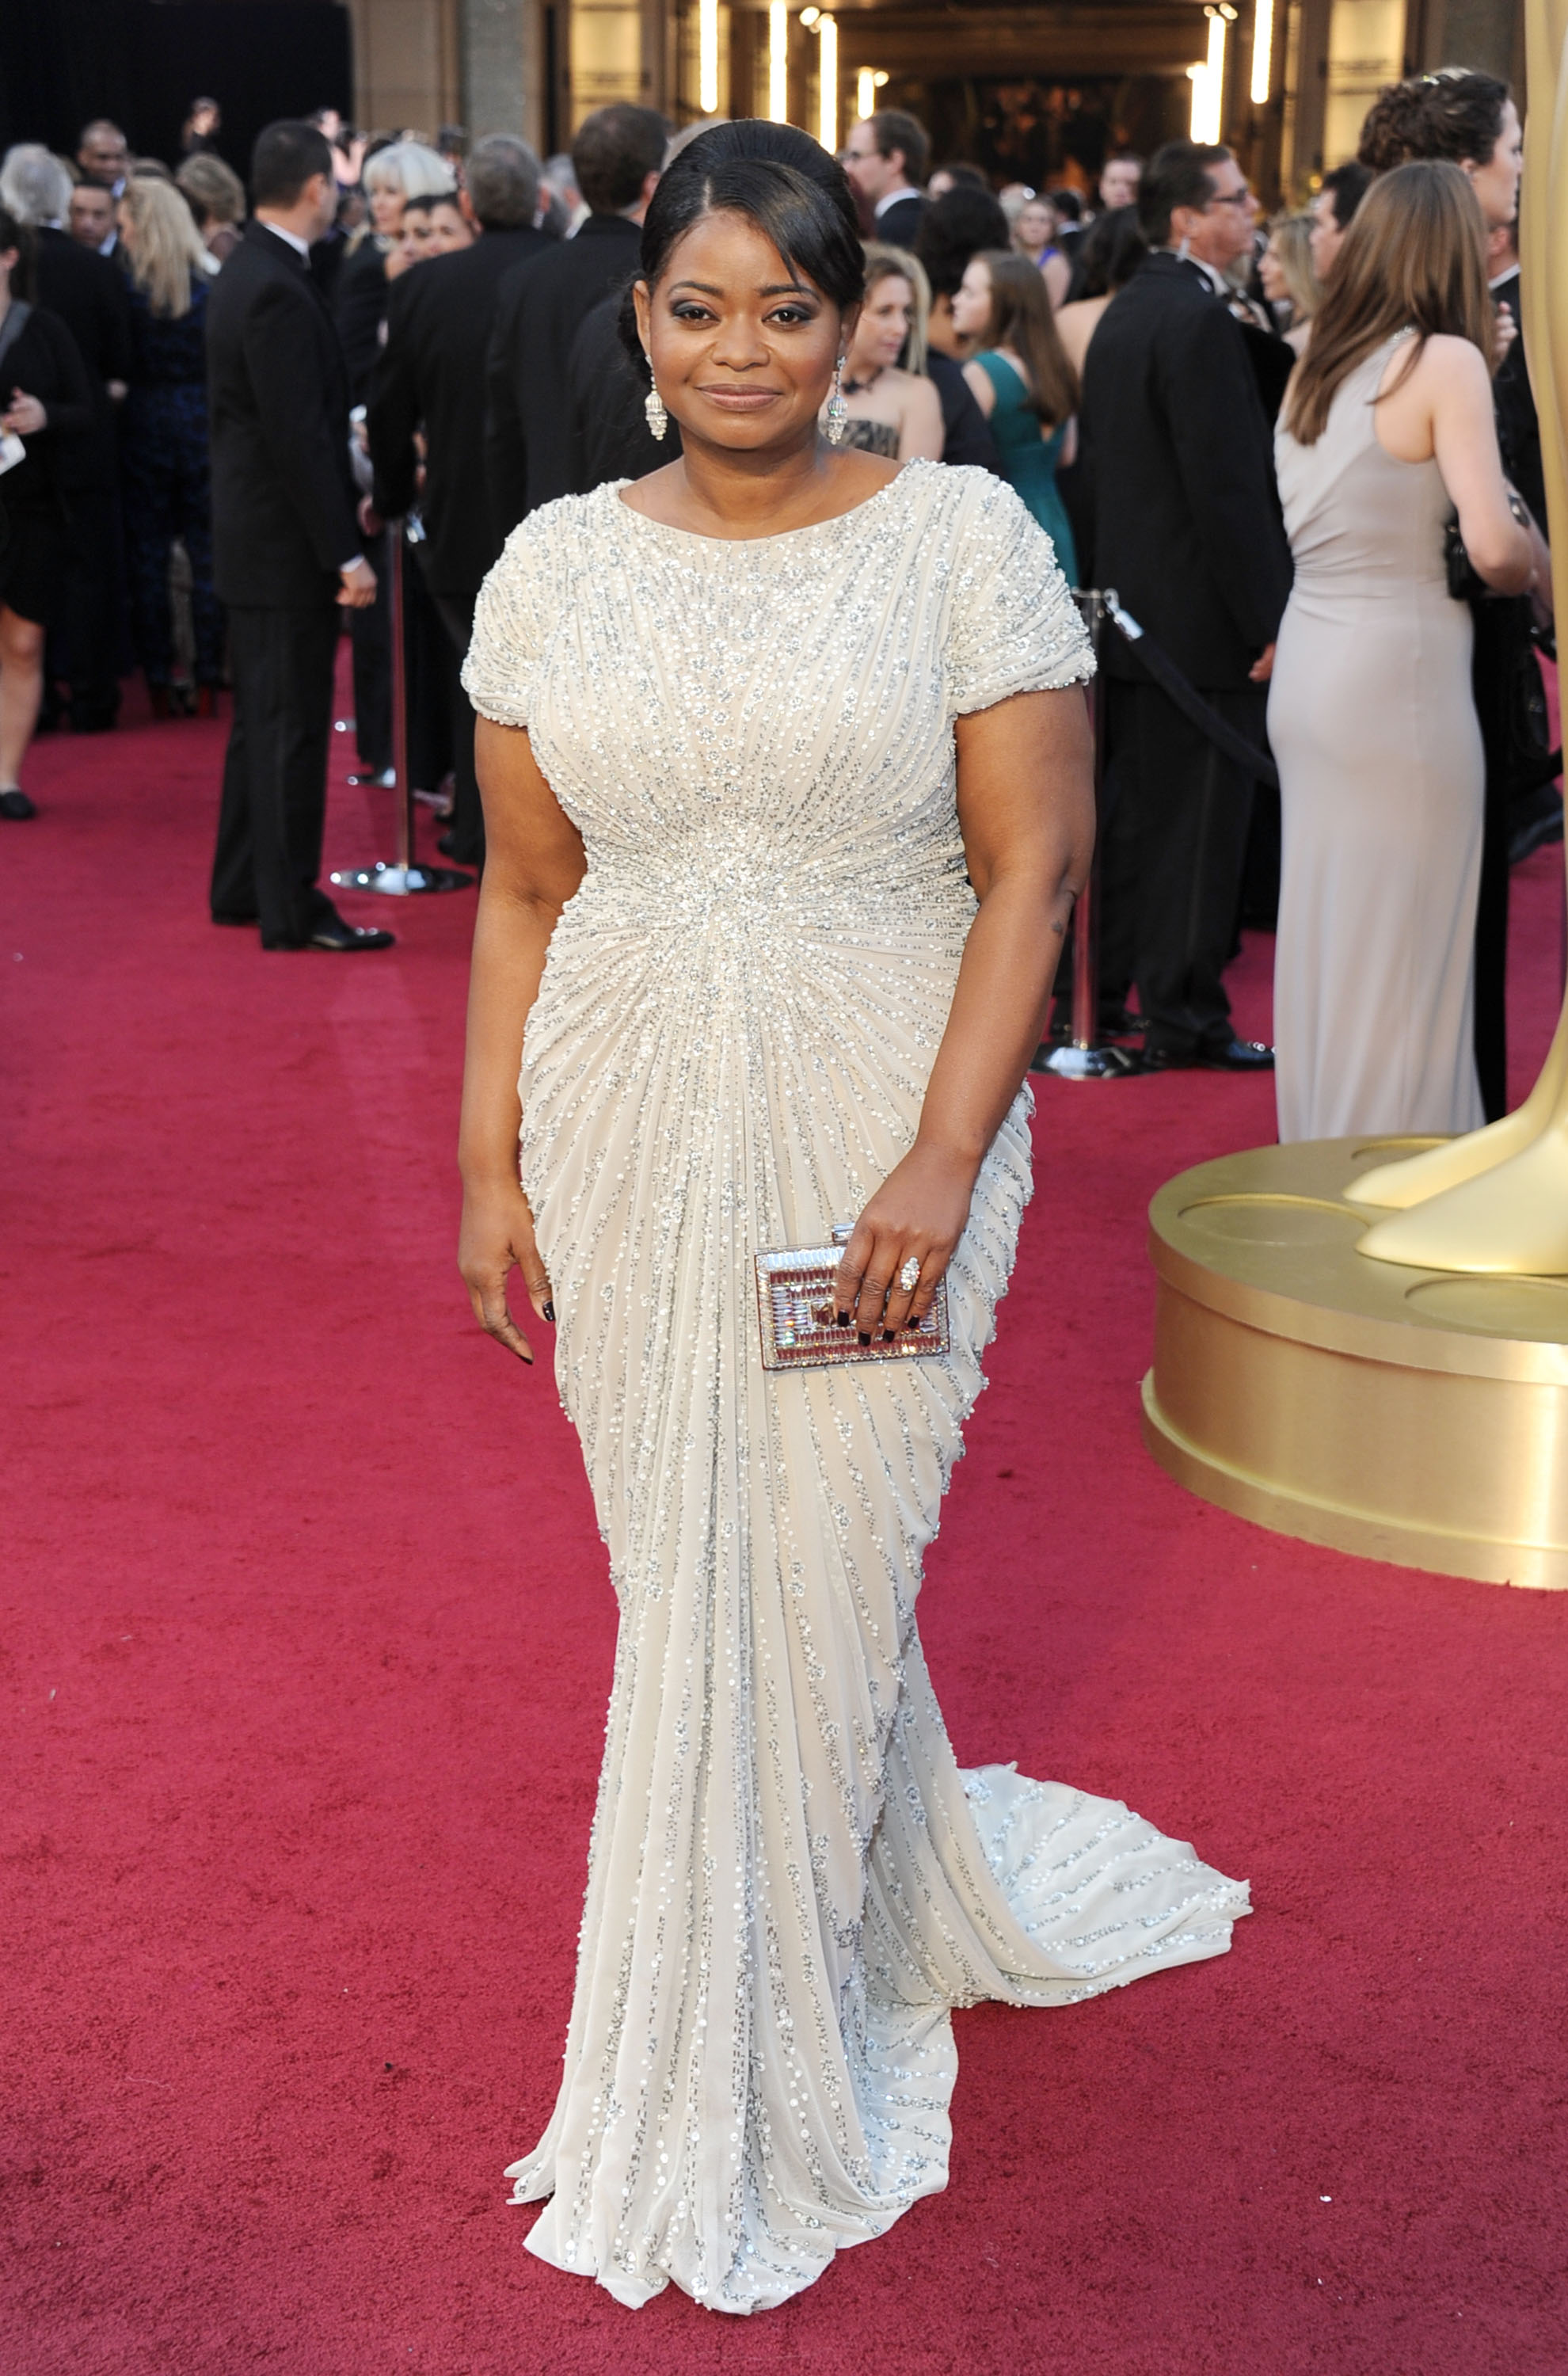 An Image of Octavia Spencer at the 2012 Oscars